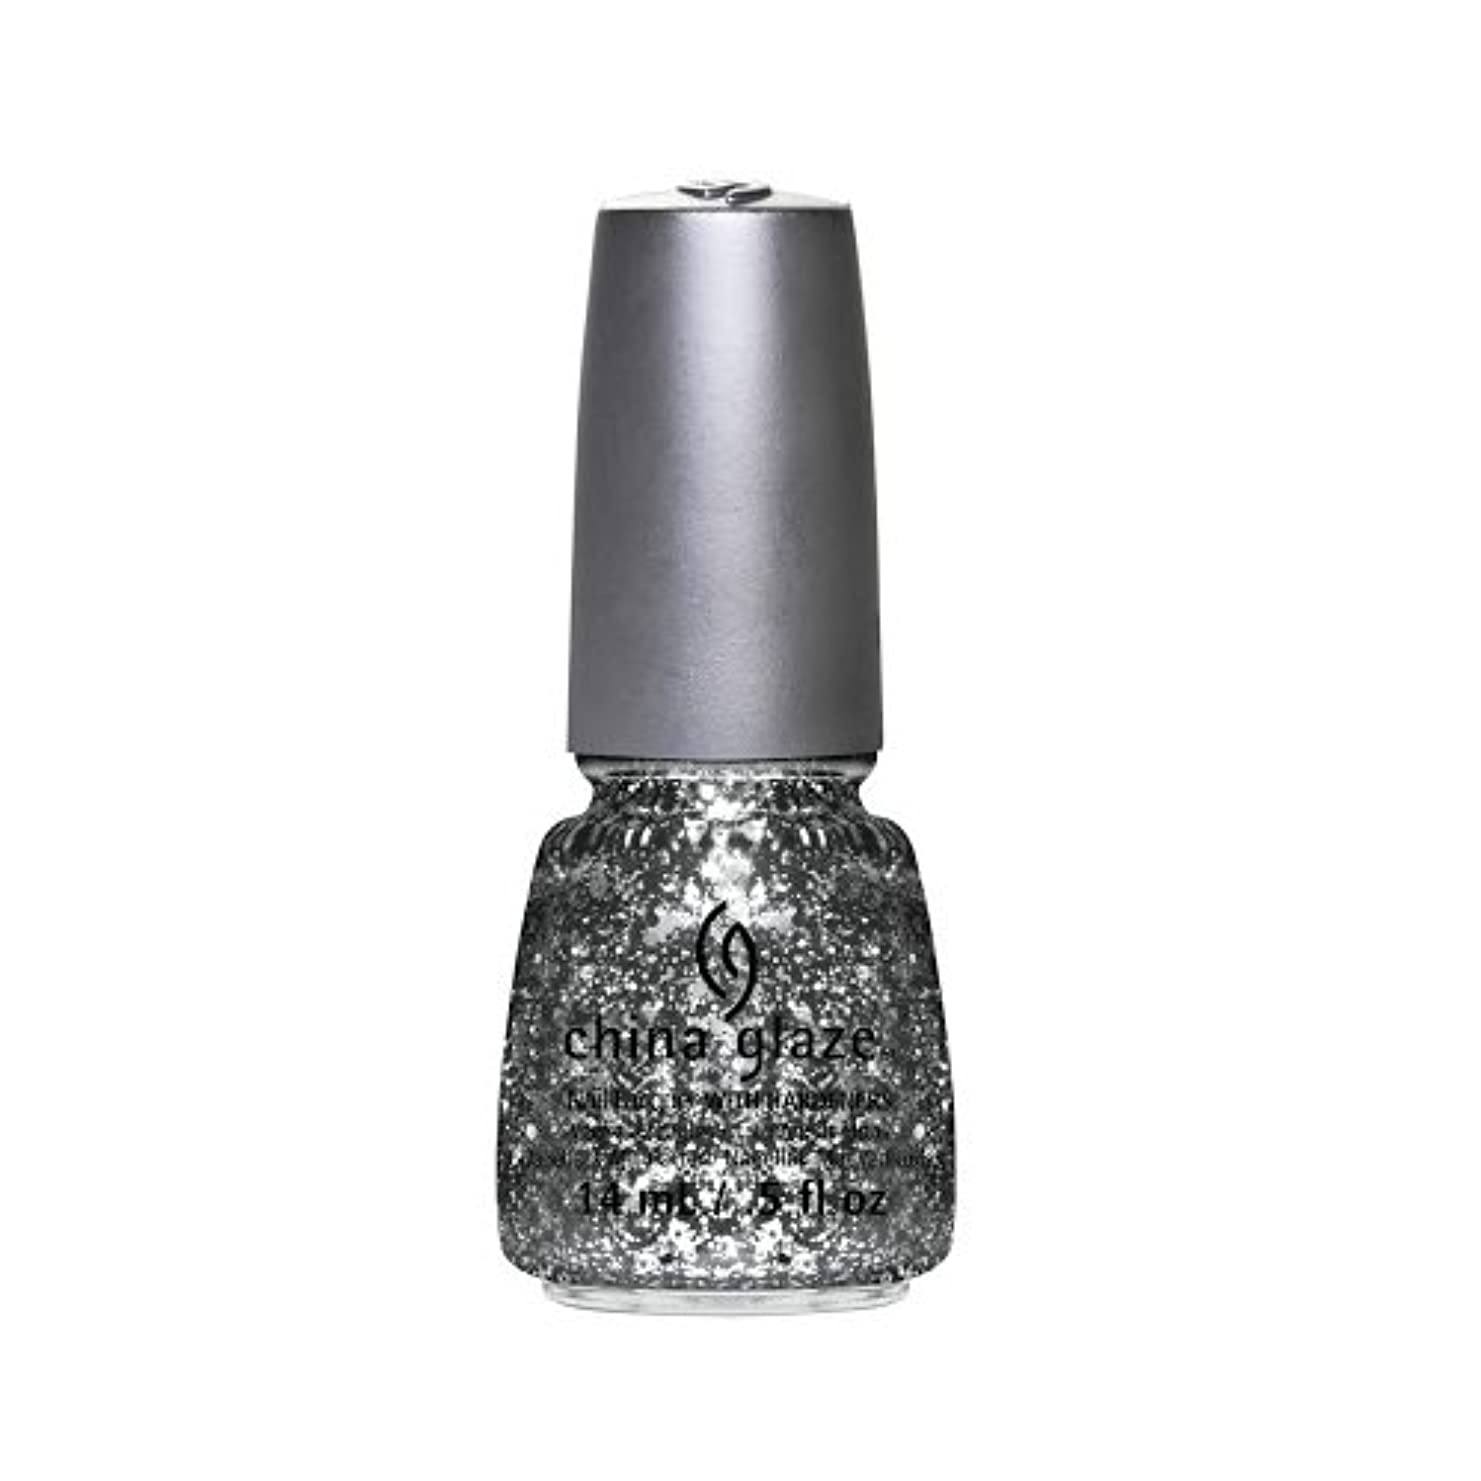 (3 Pack) CHINA GLAZE Nail Lacquer - Glitz Bitz ?n Pieces Collection - Gltz'n Pieces (並行輸入品)